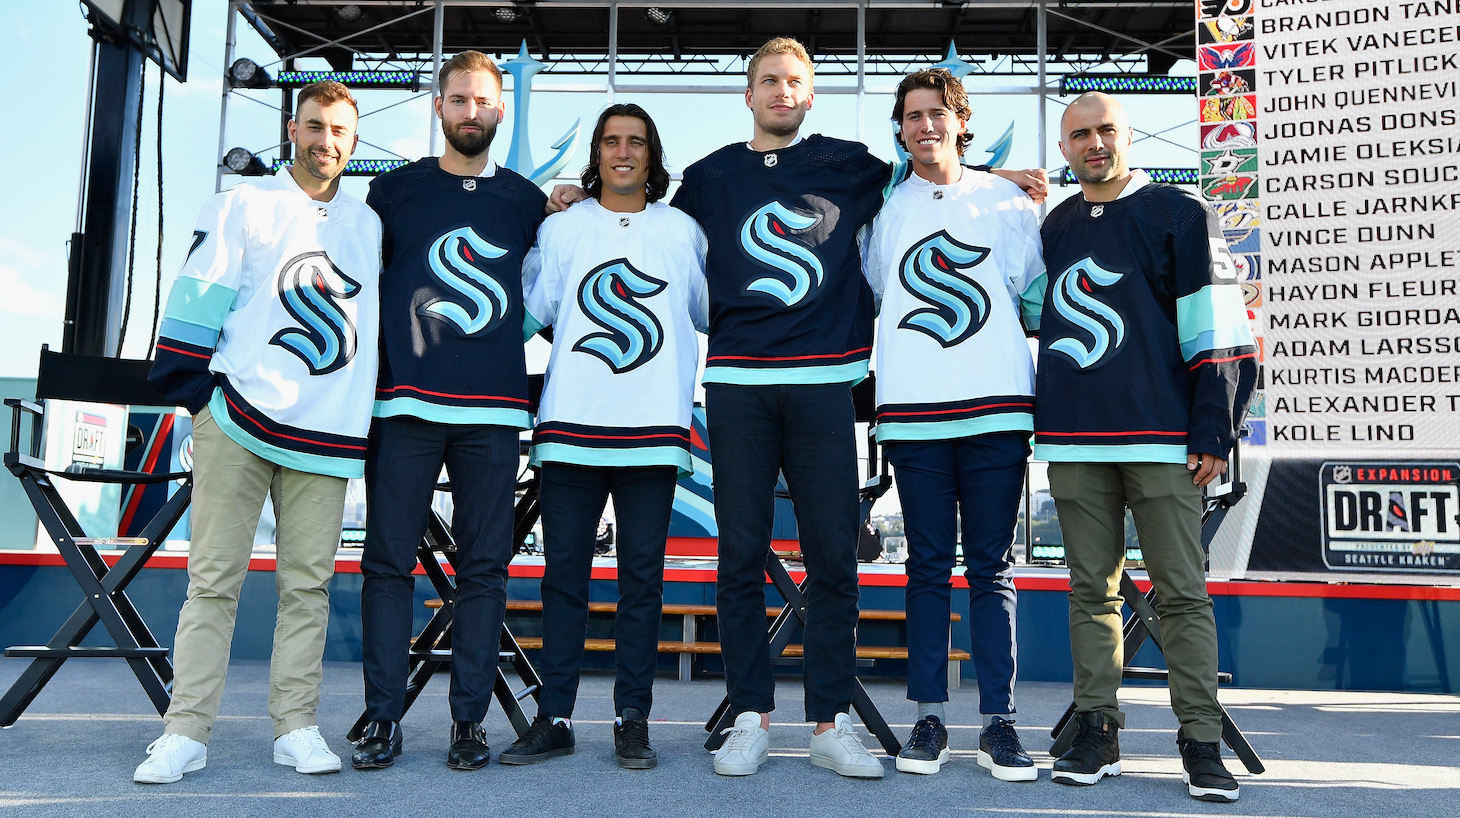 SEATTLE, WASHINGTON - JULY 21: The Seattle Kracken draft picks (L-R) Jordan Eberle, Chris Driedger, Chris Tanev, Jamie Oleksiak, Haydn Fleury and Mark Giordano following the 2021 NHL Expansion Draft at Gas Works Park on July 21, 2021 in Seattle, Washington. The Seattle Kraken is the National Hockey League's newest franchise and will begin play in October 2021. (Photo by Alika Jenner/Getty Images)